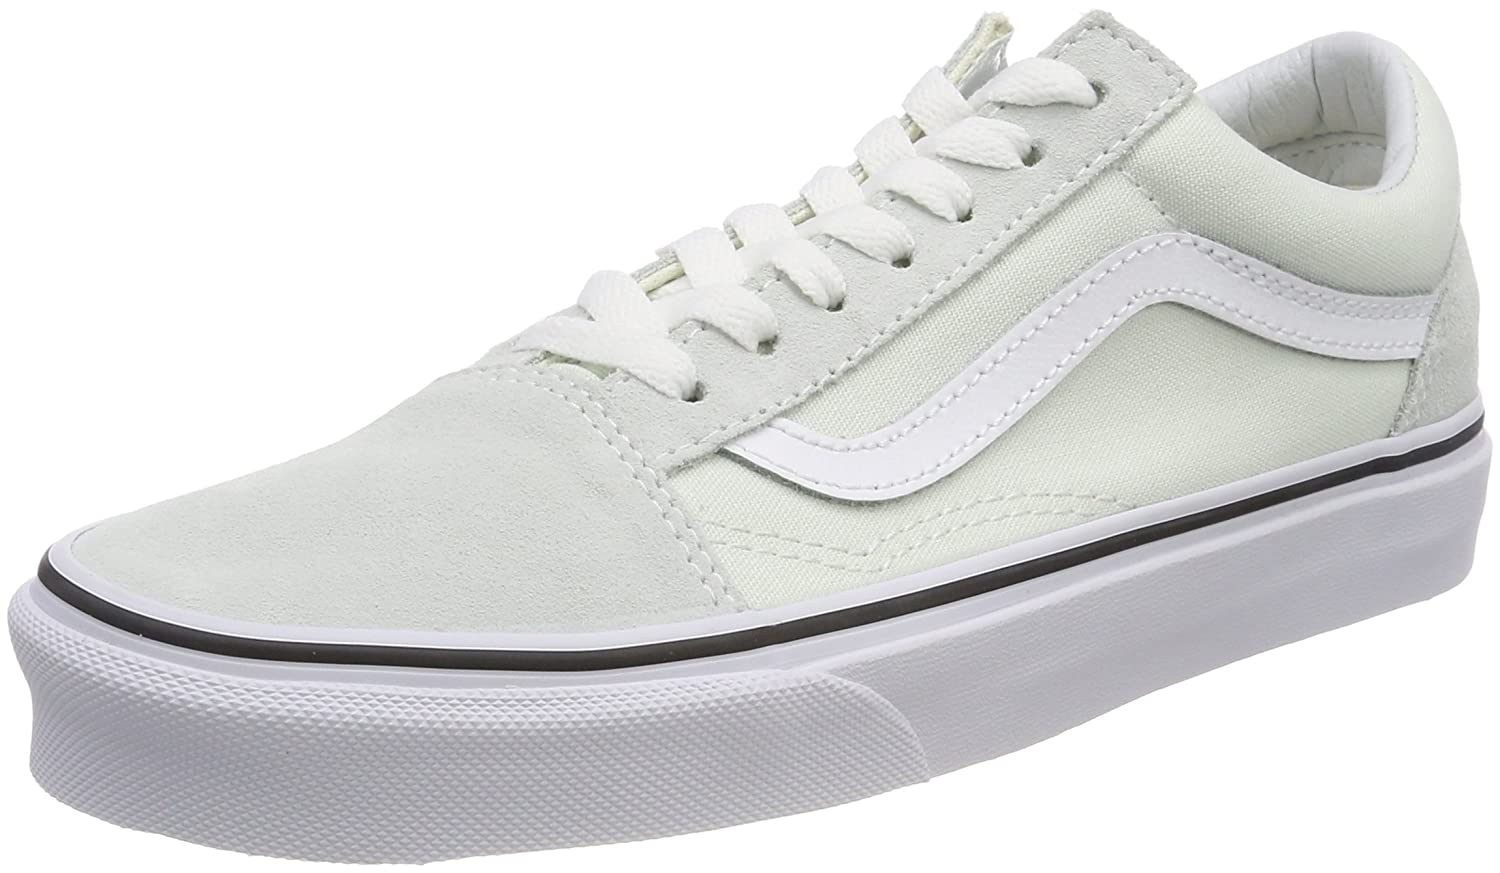 78bb194961a1e9 Vans Women s Old Skool Trainers  Amazon.co.uk  Shoes   Bags